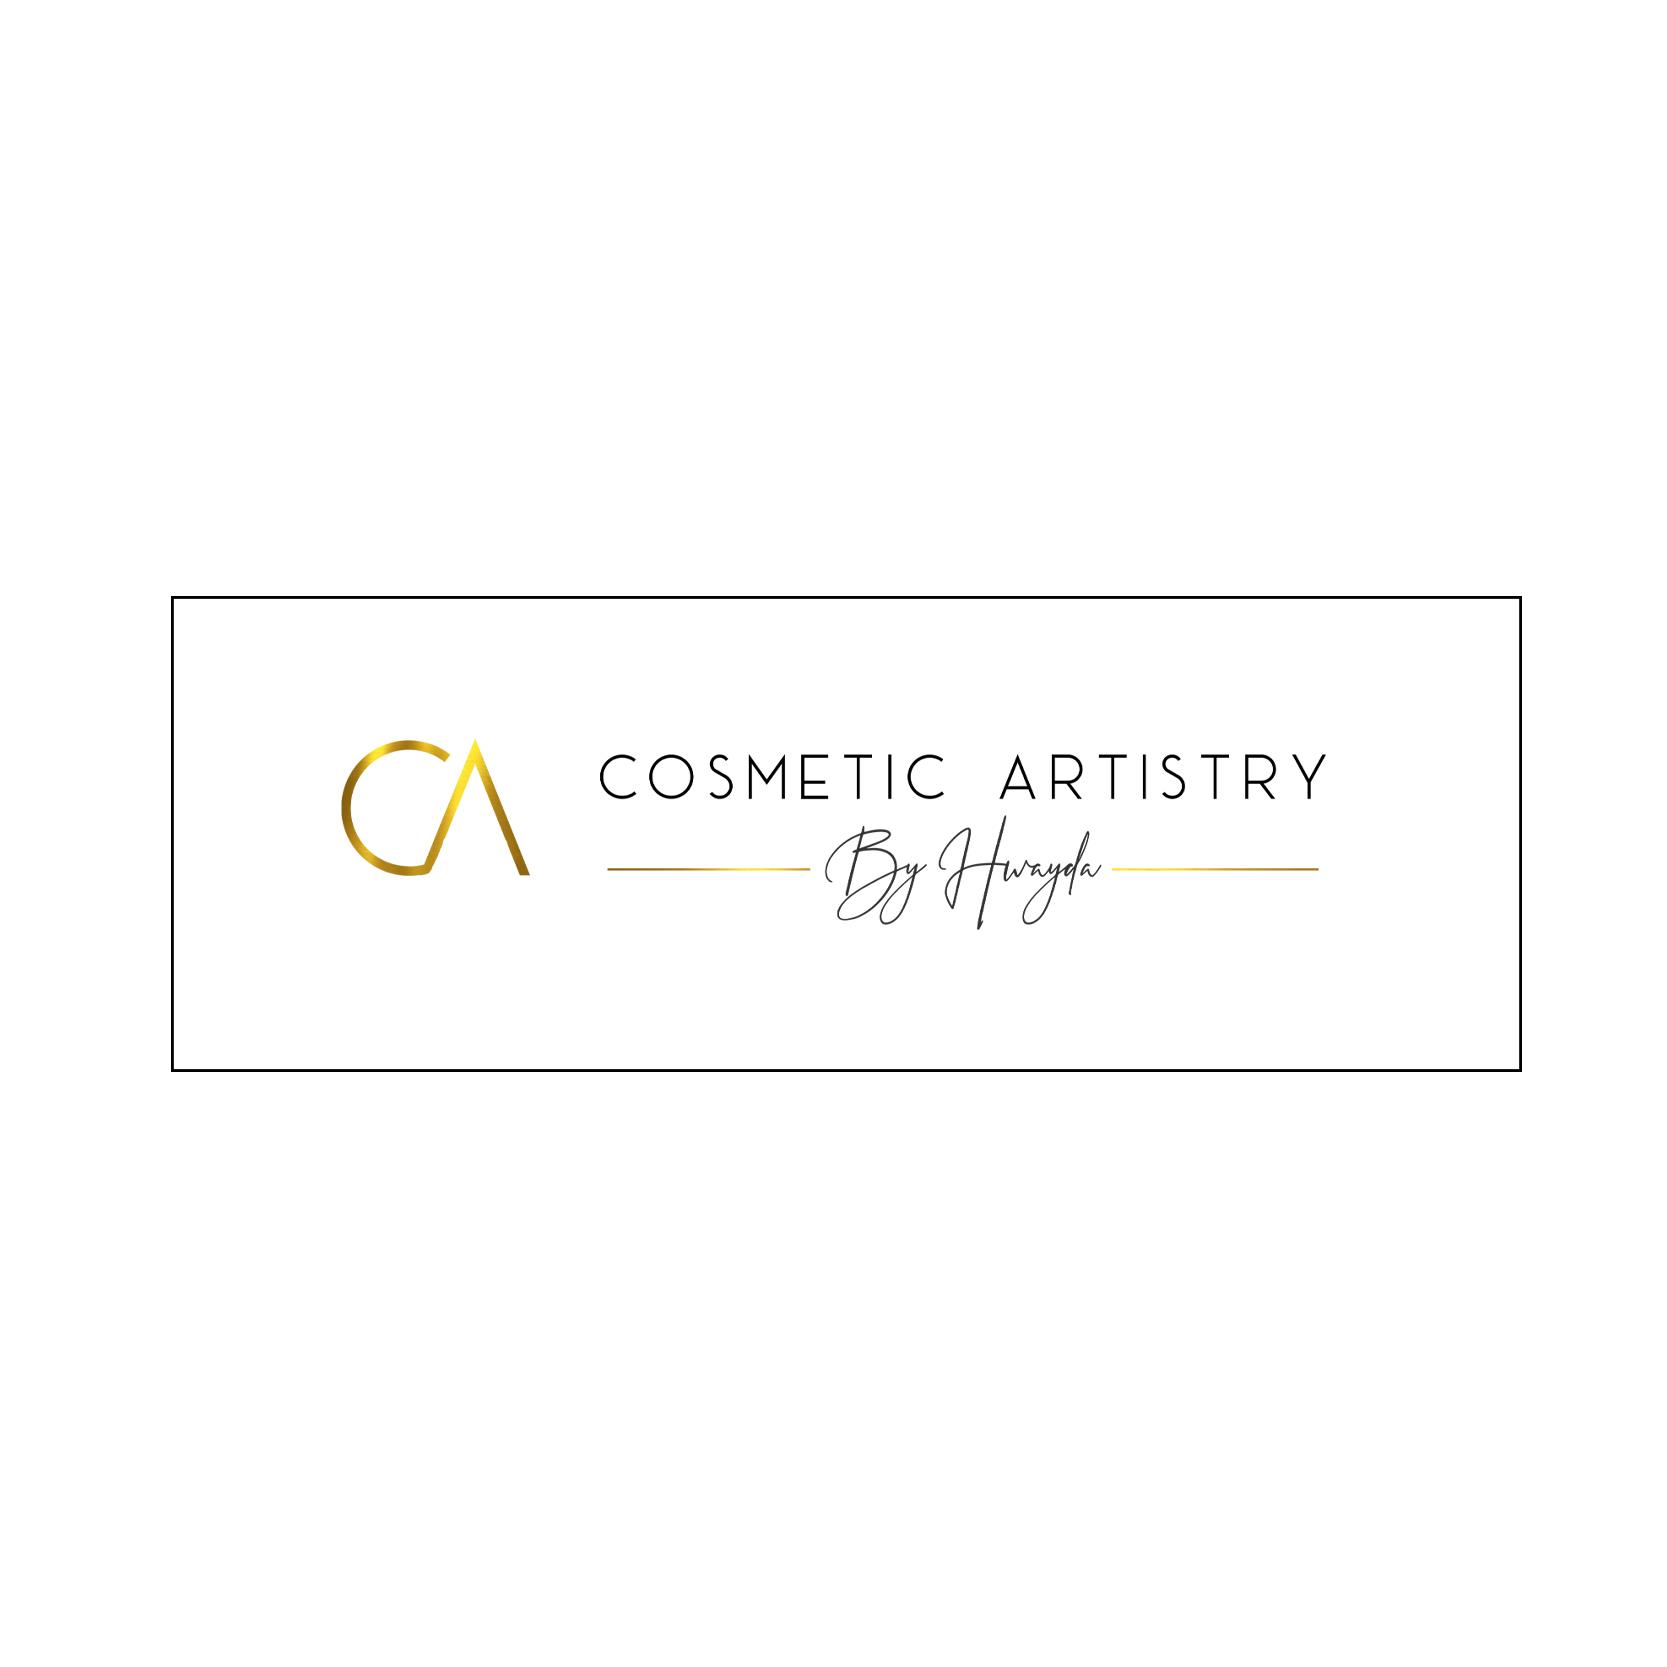 Cosmetic Artistry By Hwayda